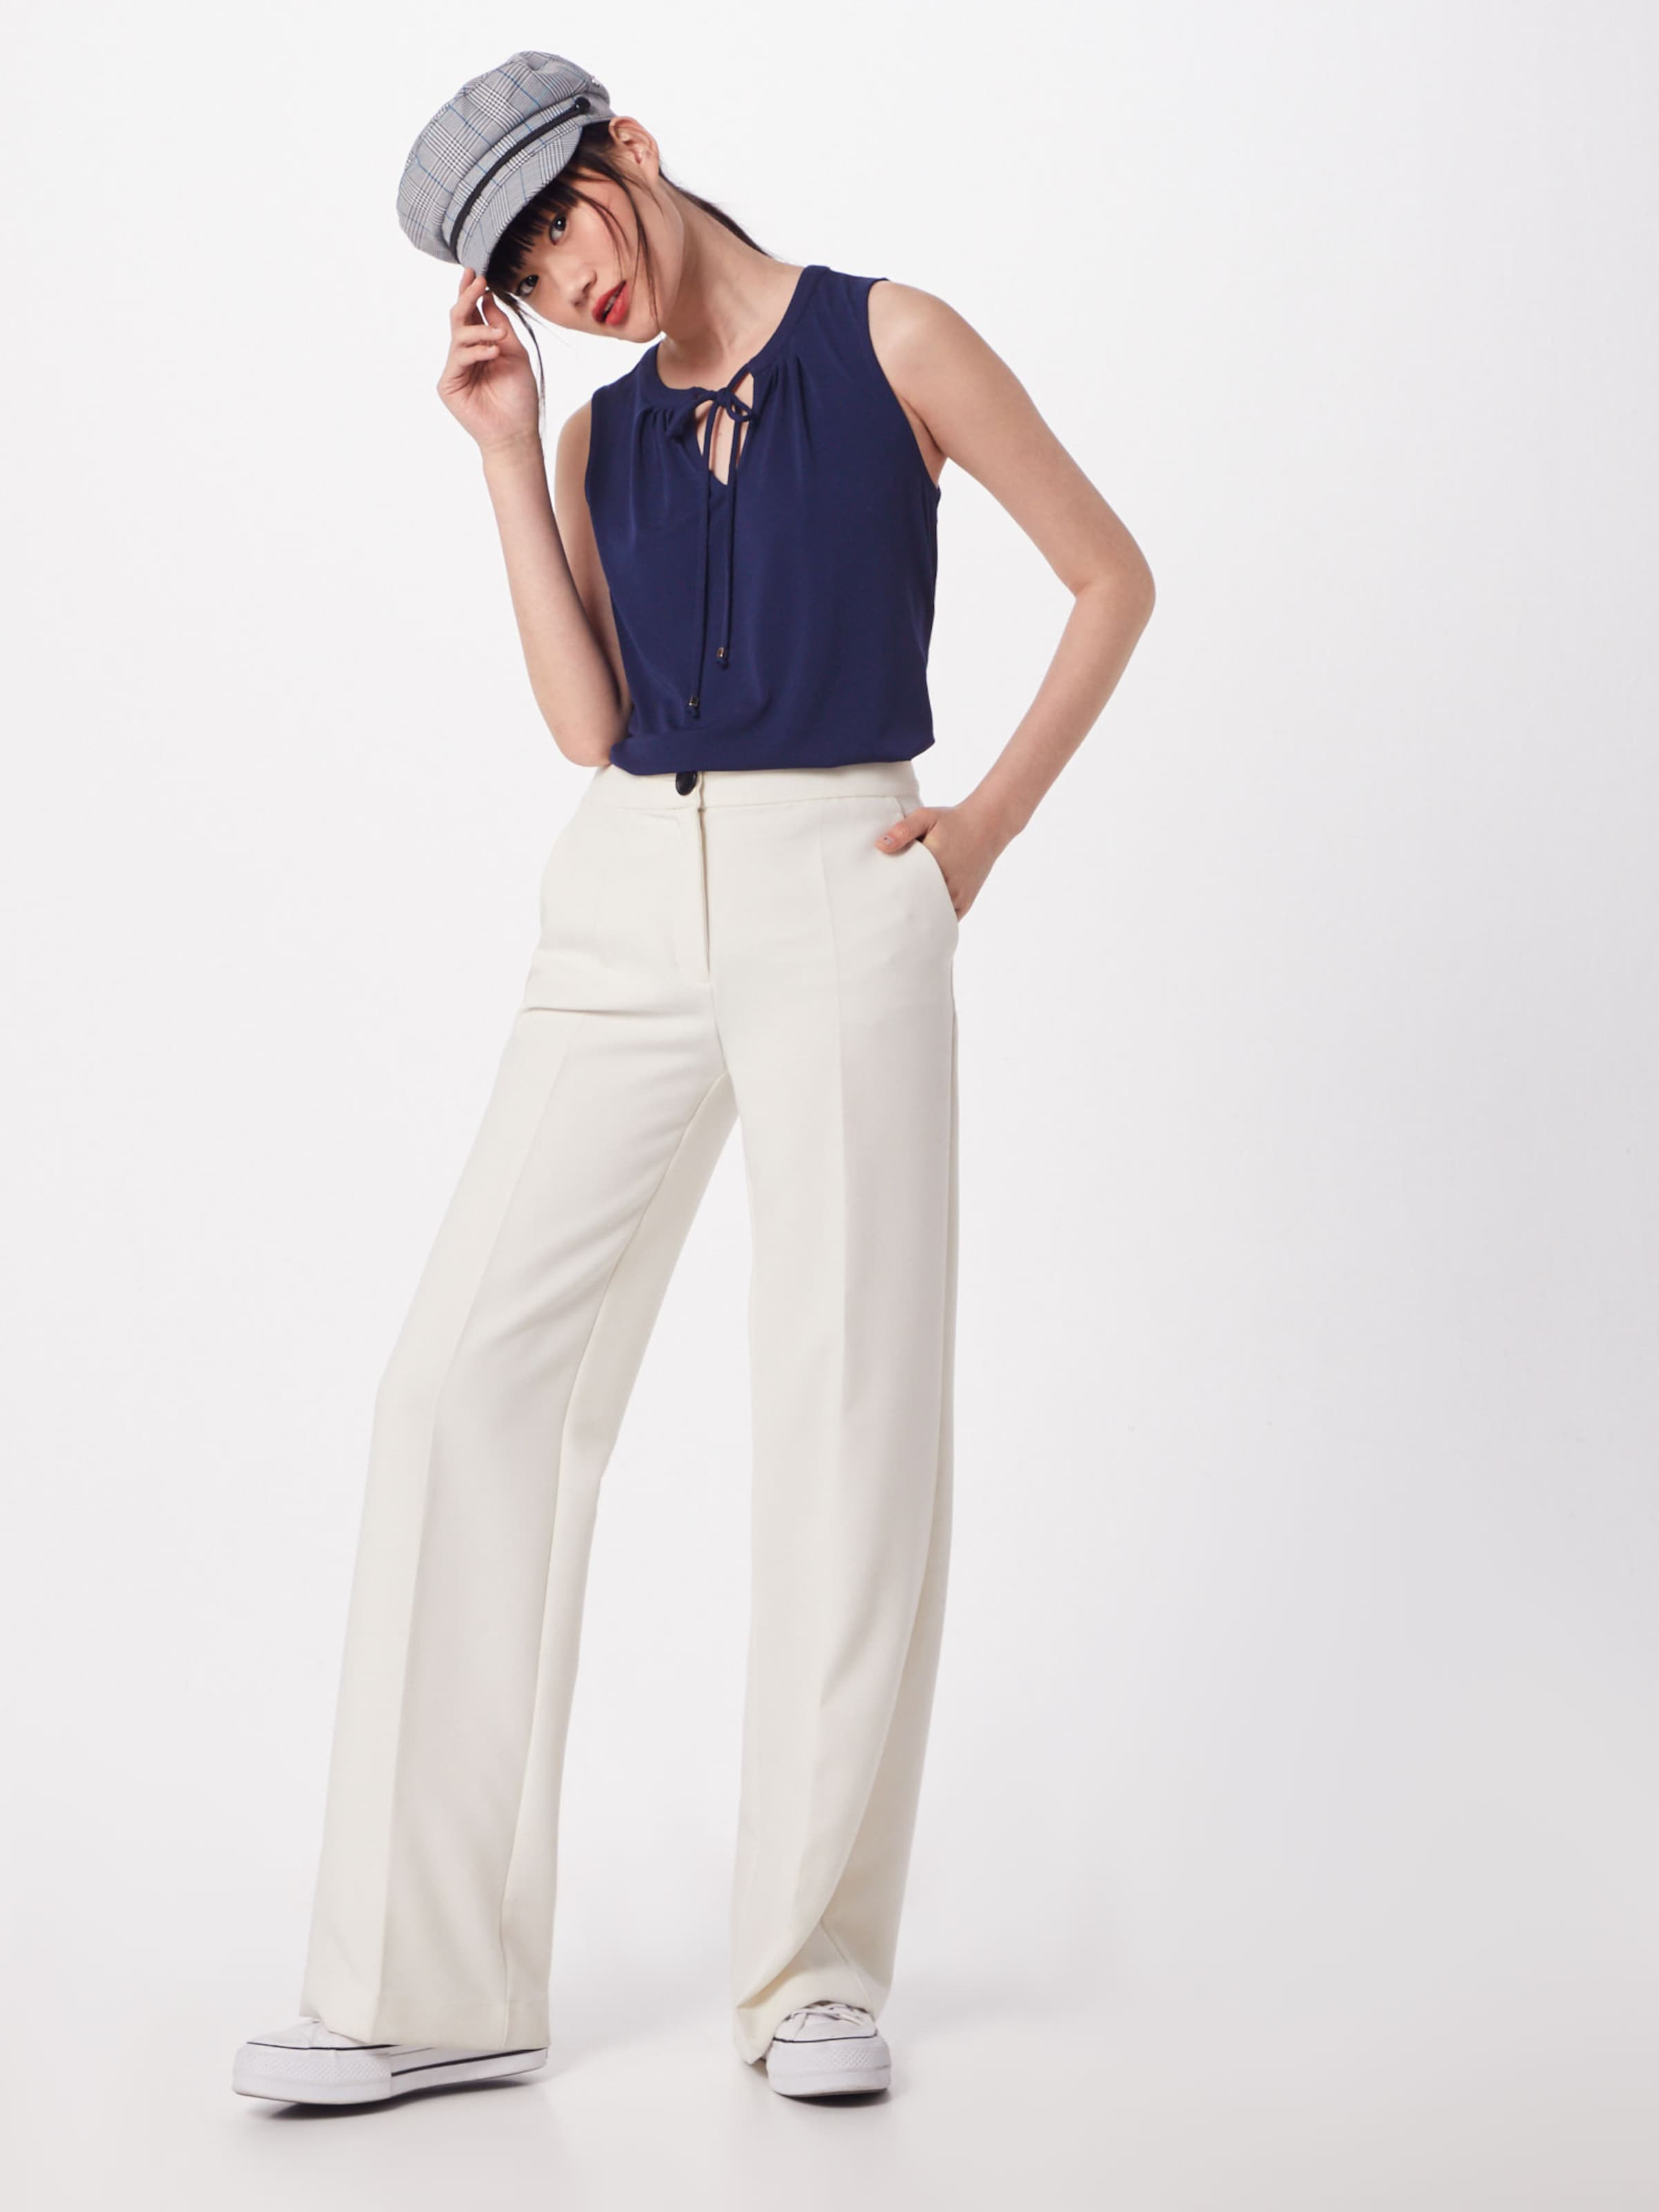 Top Collection In In Collection Esprit Esprit Top Navy Navy 3AcL5Rjq4